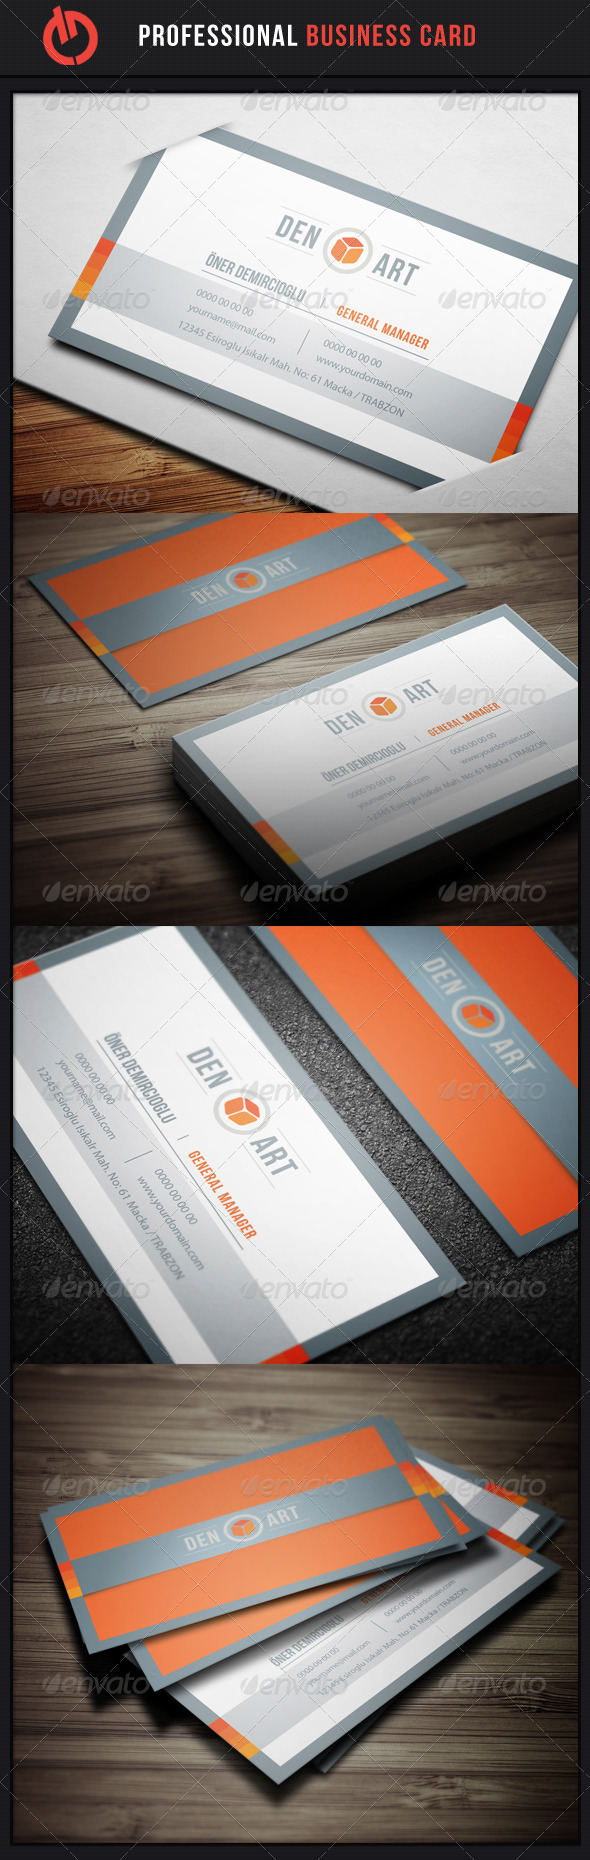 GraphicRiver Professional Business Card 12 3553607